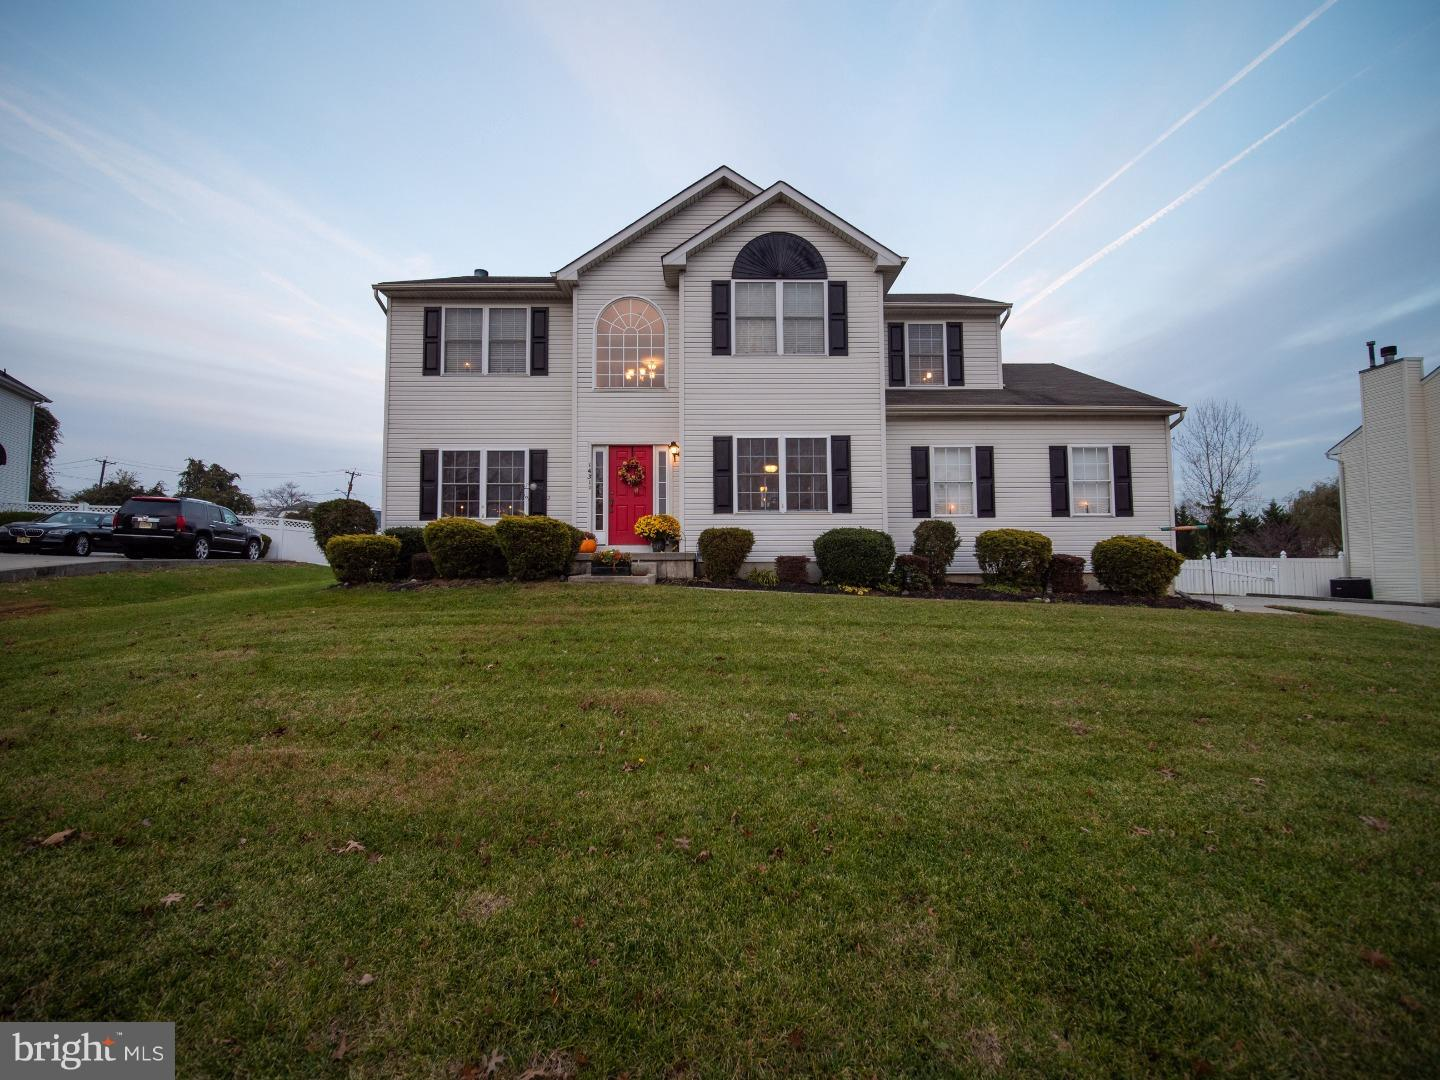 1431 WINDSOR DRIVE, WEST DEPTFORD TWP, NJ 08086